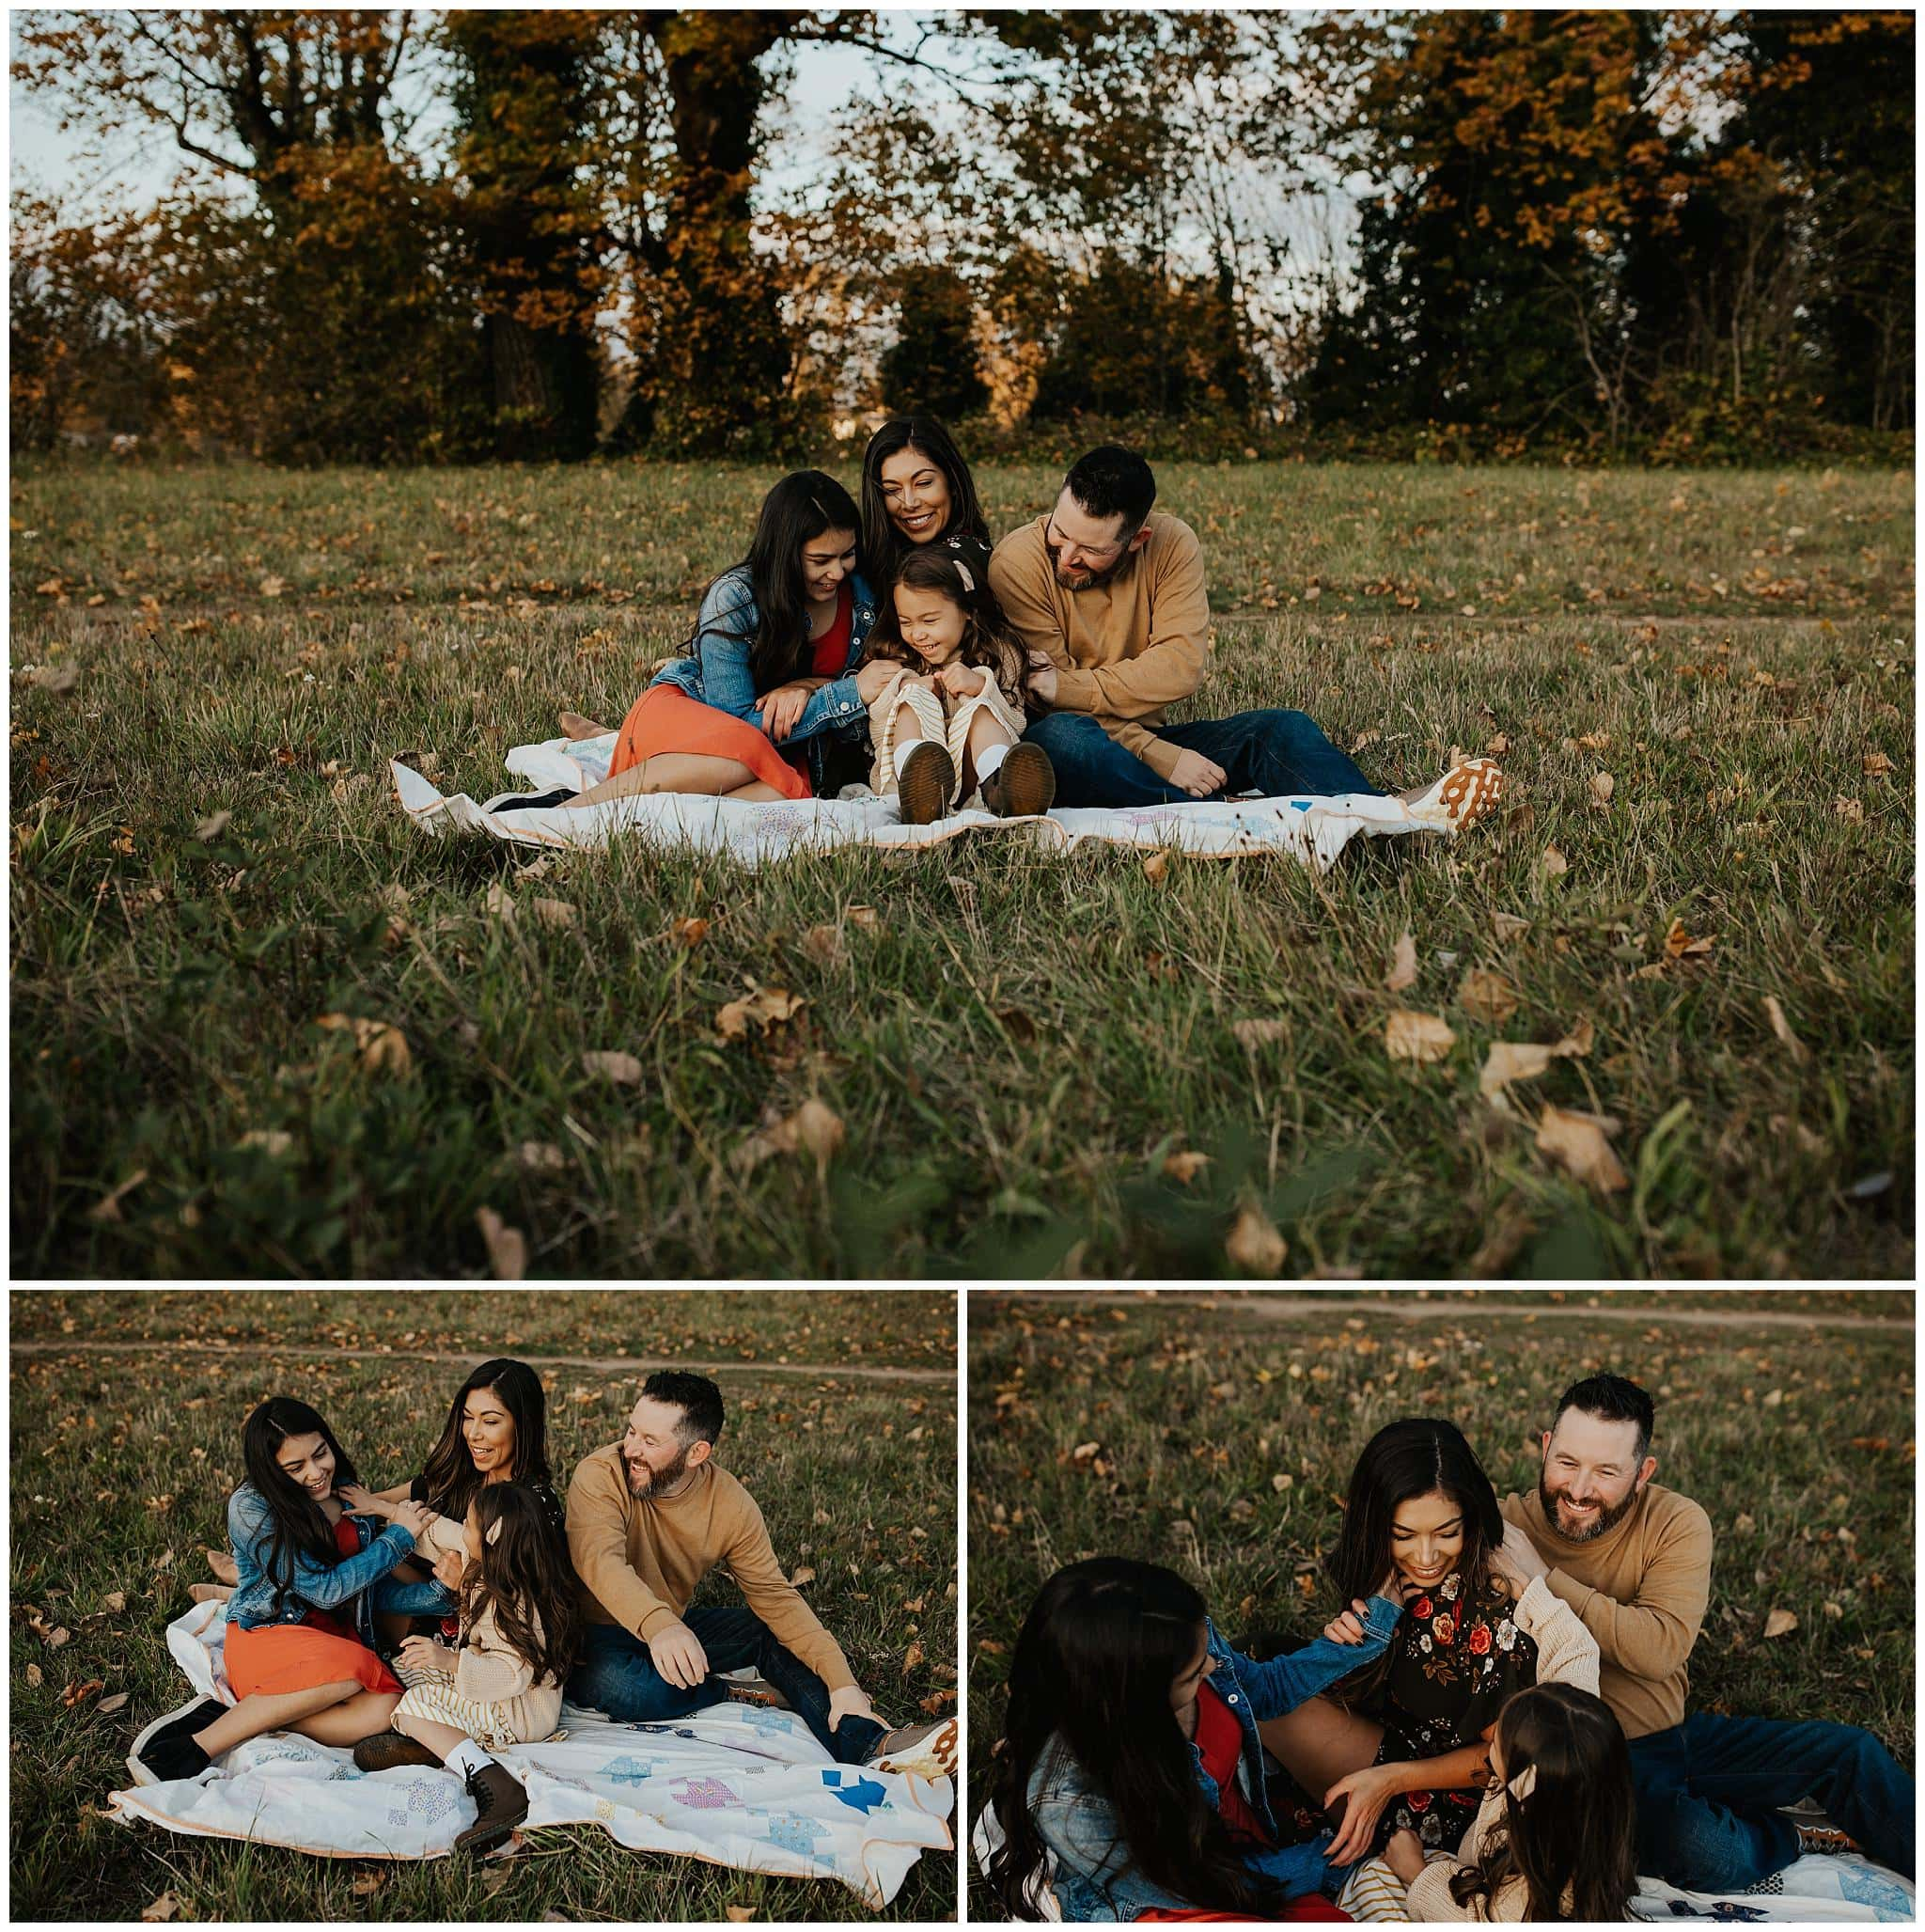 Family sitting on blanket and laughing together